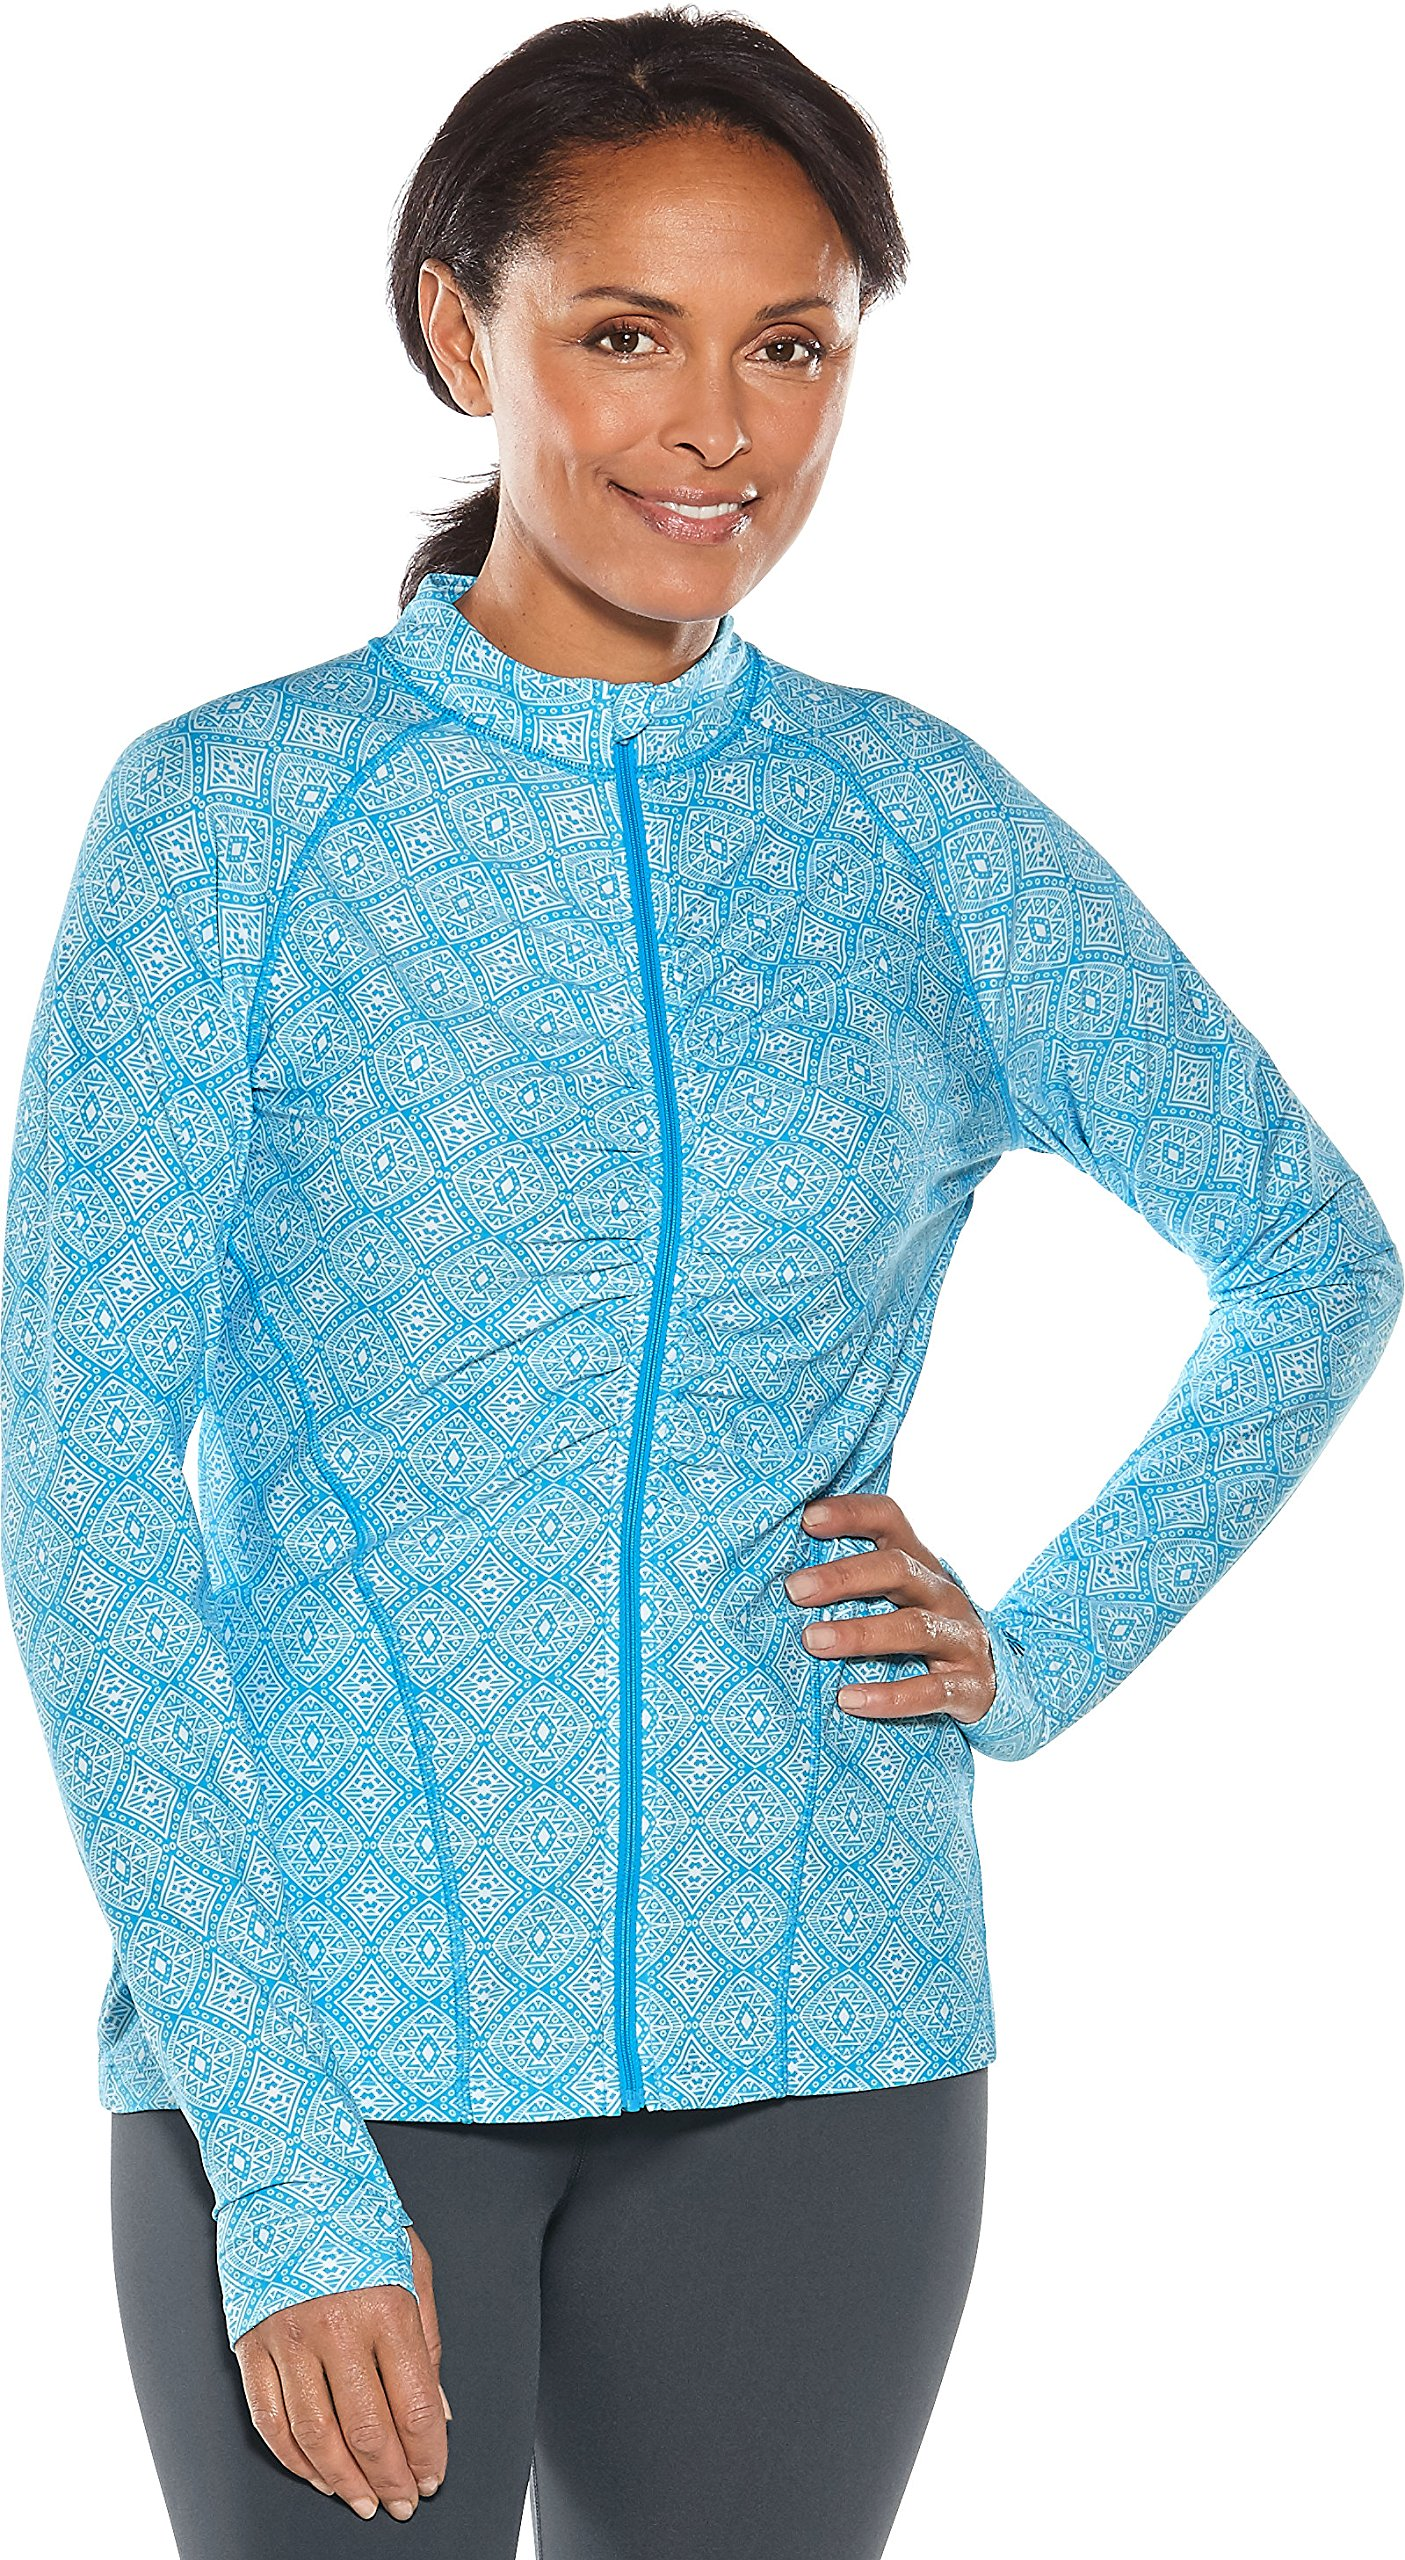 Coolibar UPF 50+ Women's Atitlan Ruched Swim Jacket - Sun Protective (Medium- Azure Diamond Tile) by Coolibar